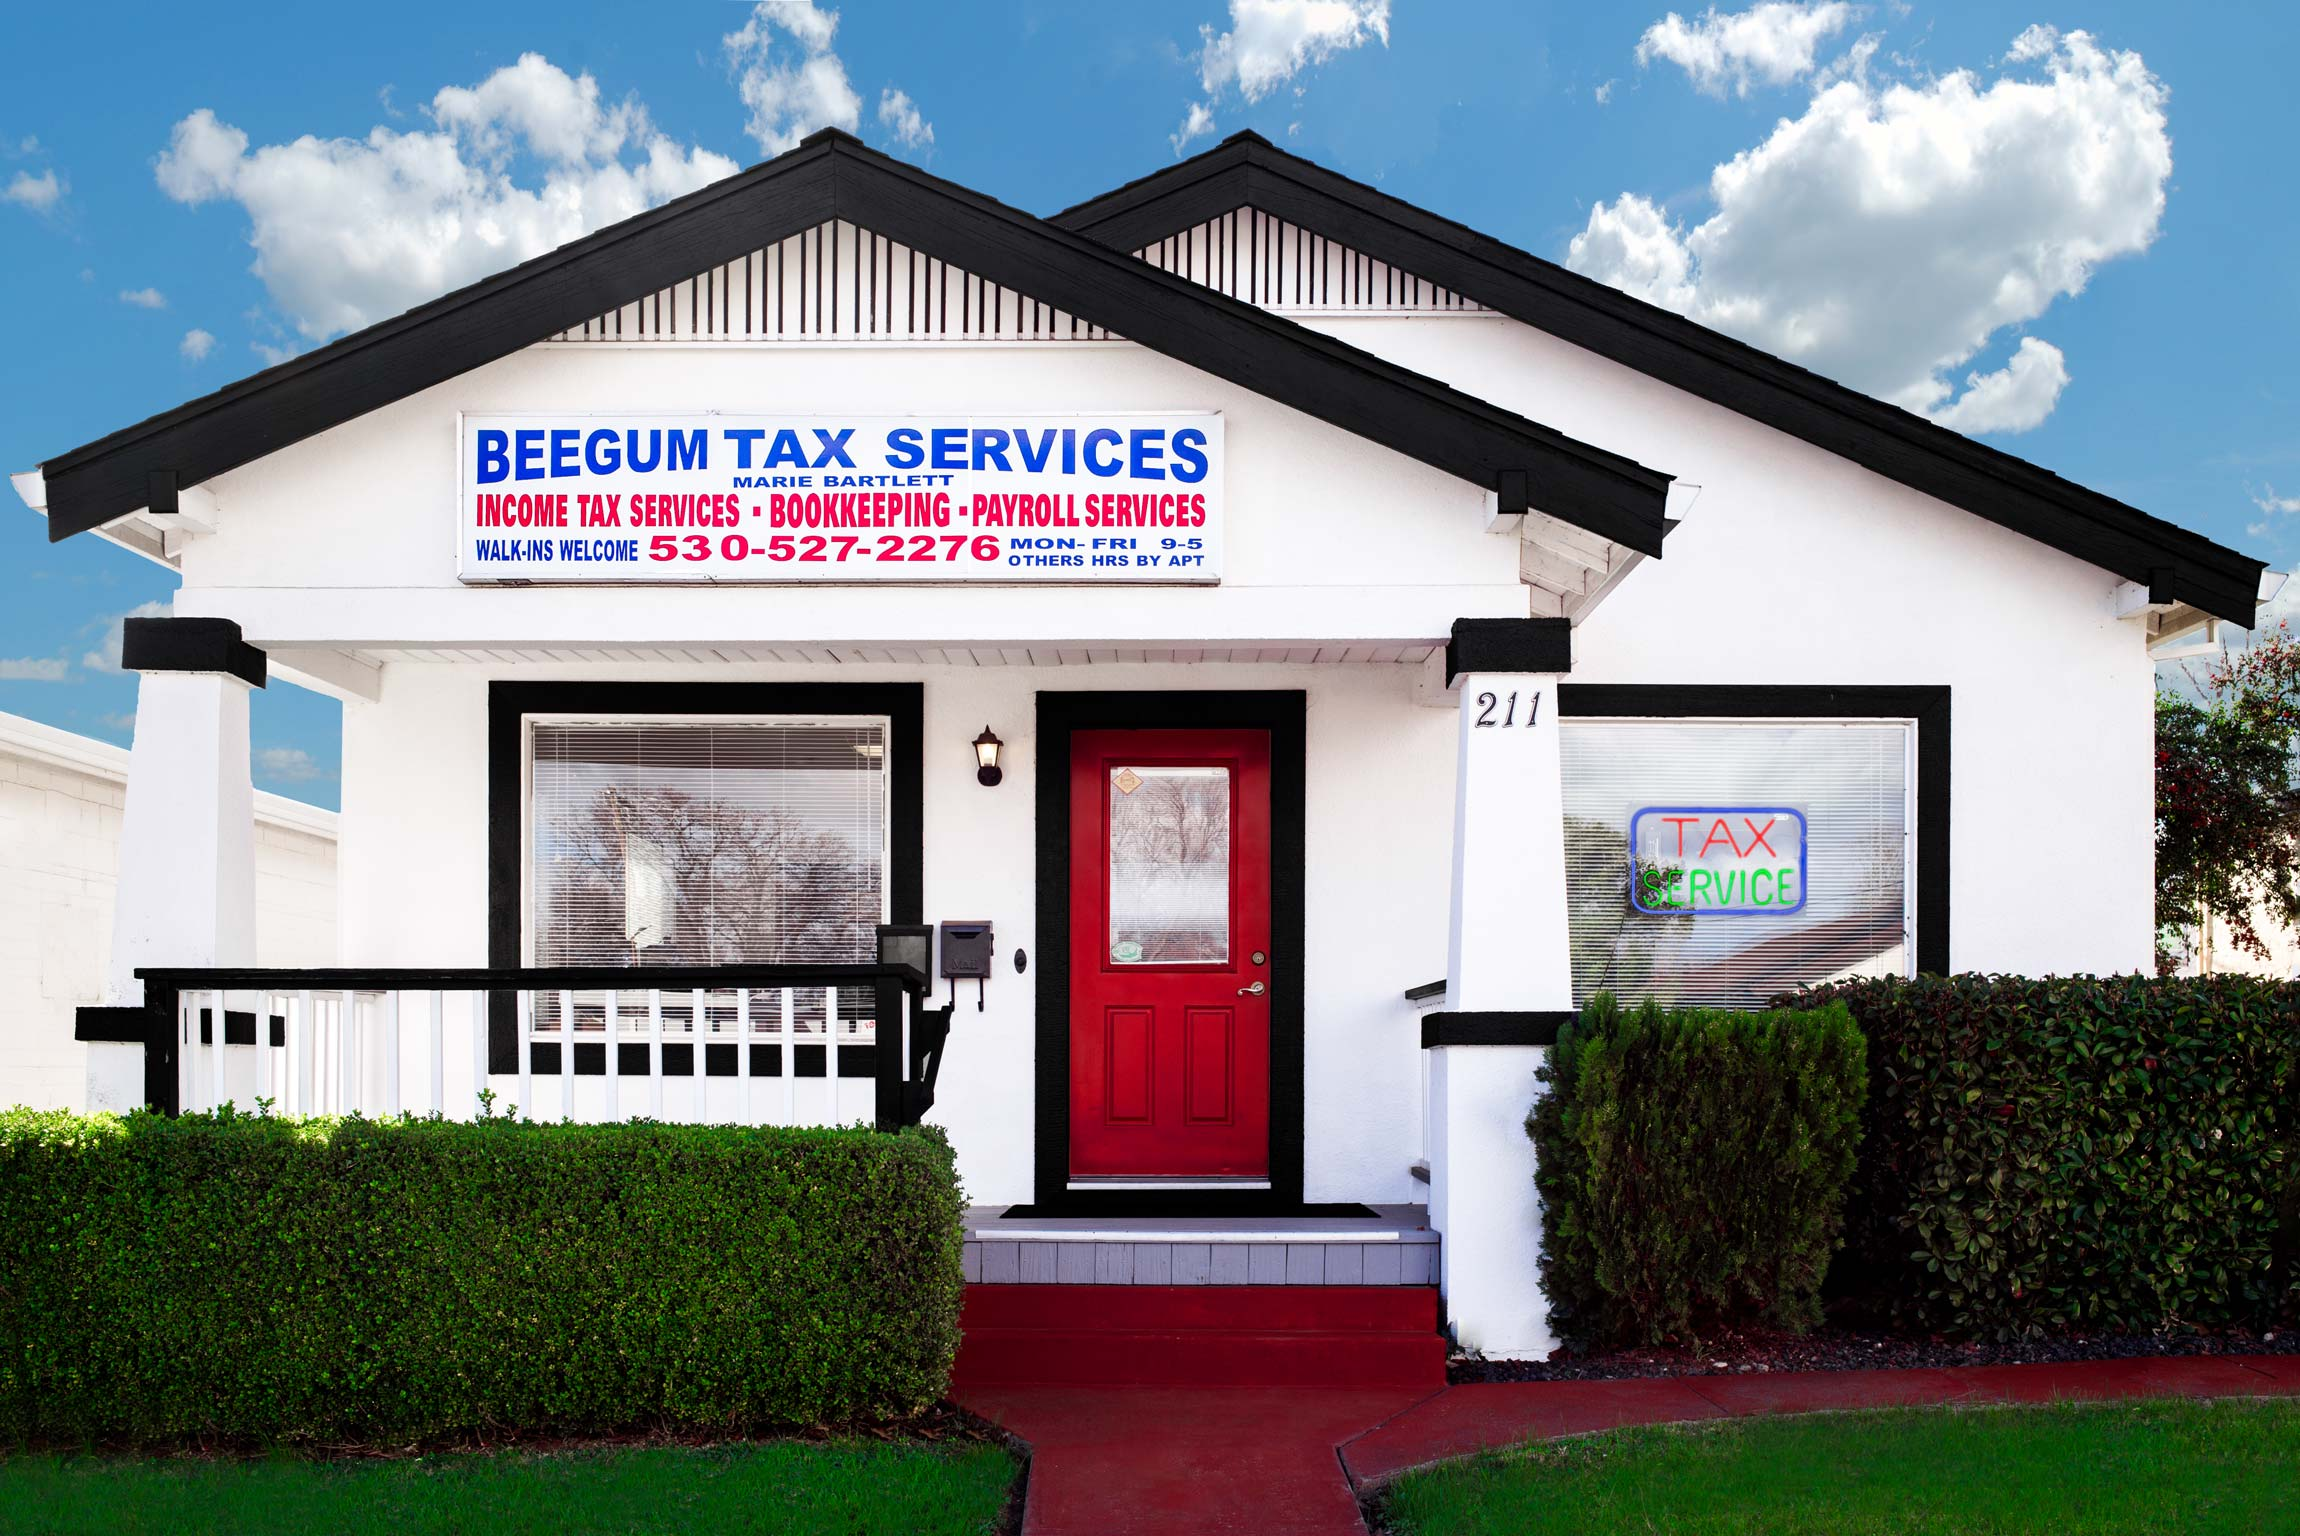 Small Business Photography for Beegum Tax Services